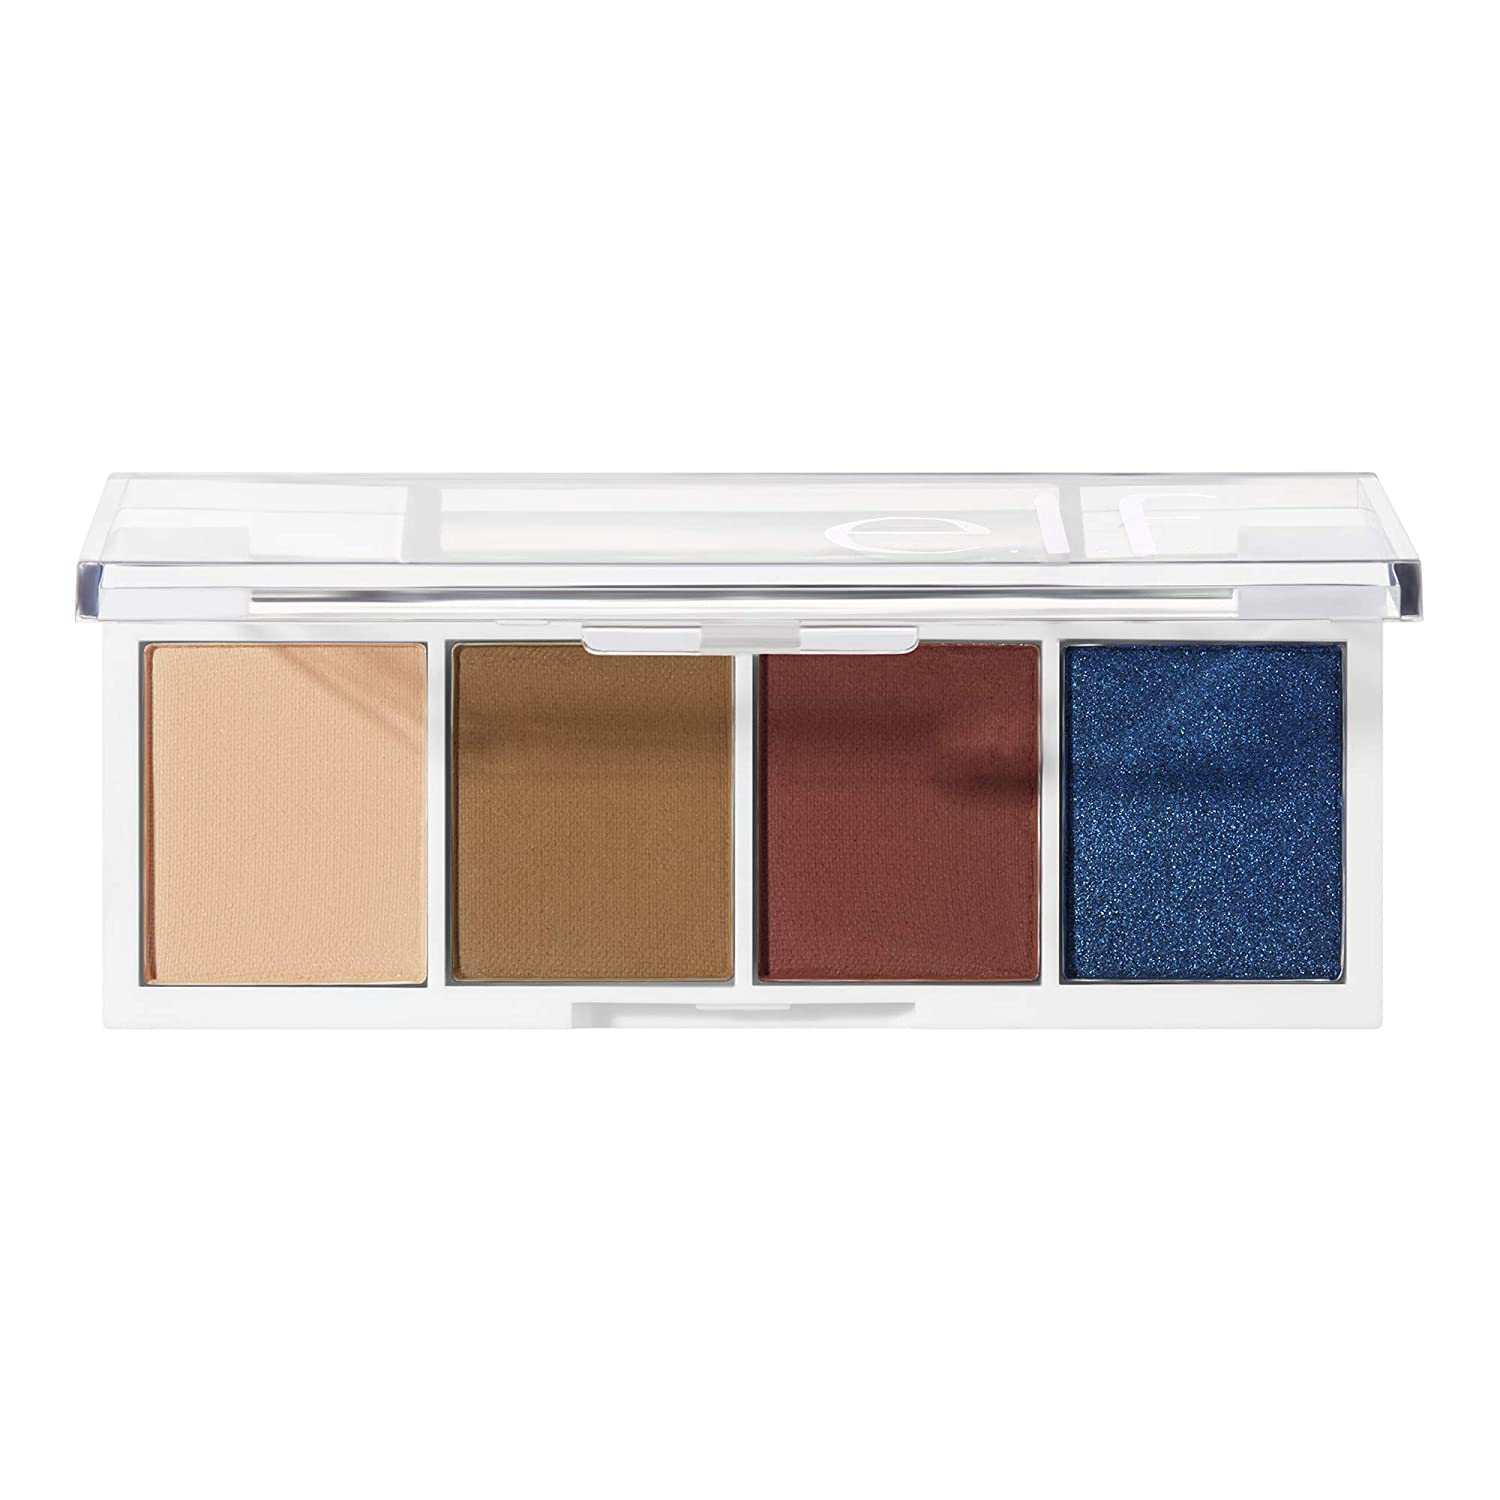 e.l.f. Cosmetics Bite Size Eyeshadow Mini Palette, Carnival Candy, 0.12 Ounce, Carnival Candy, 0.12 Ounce